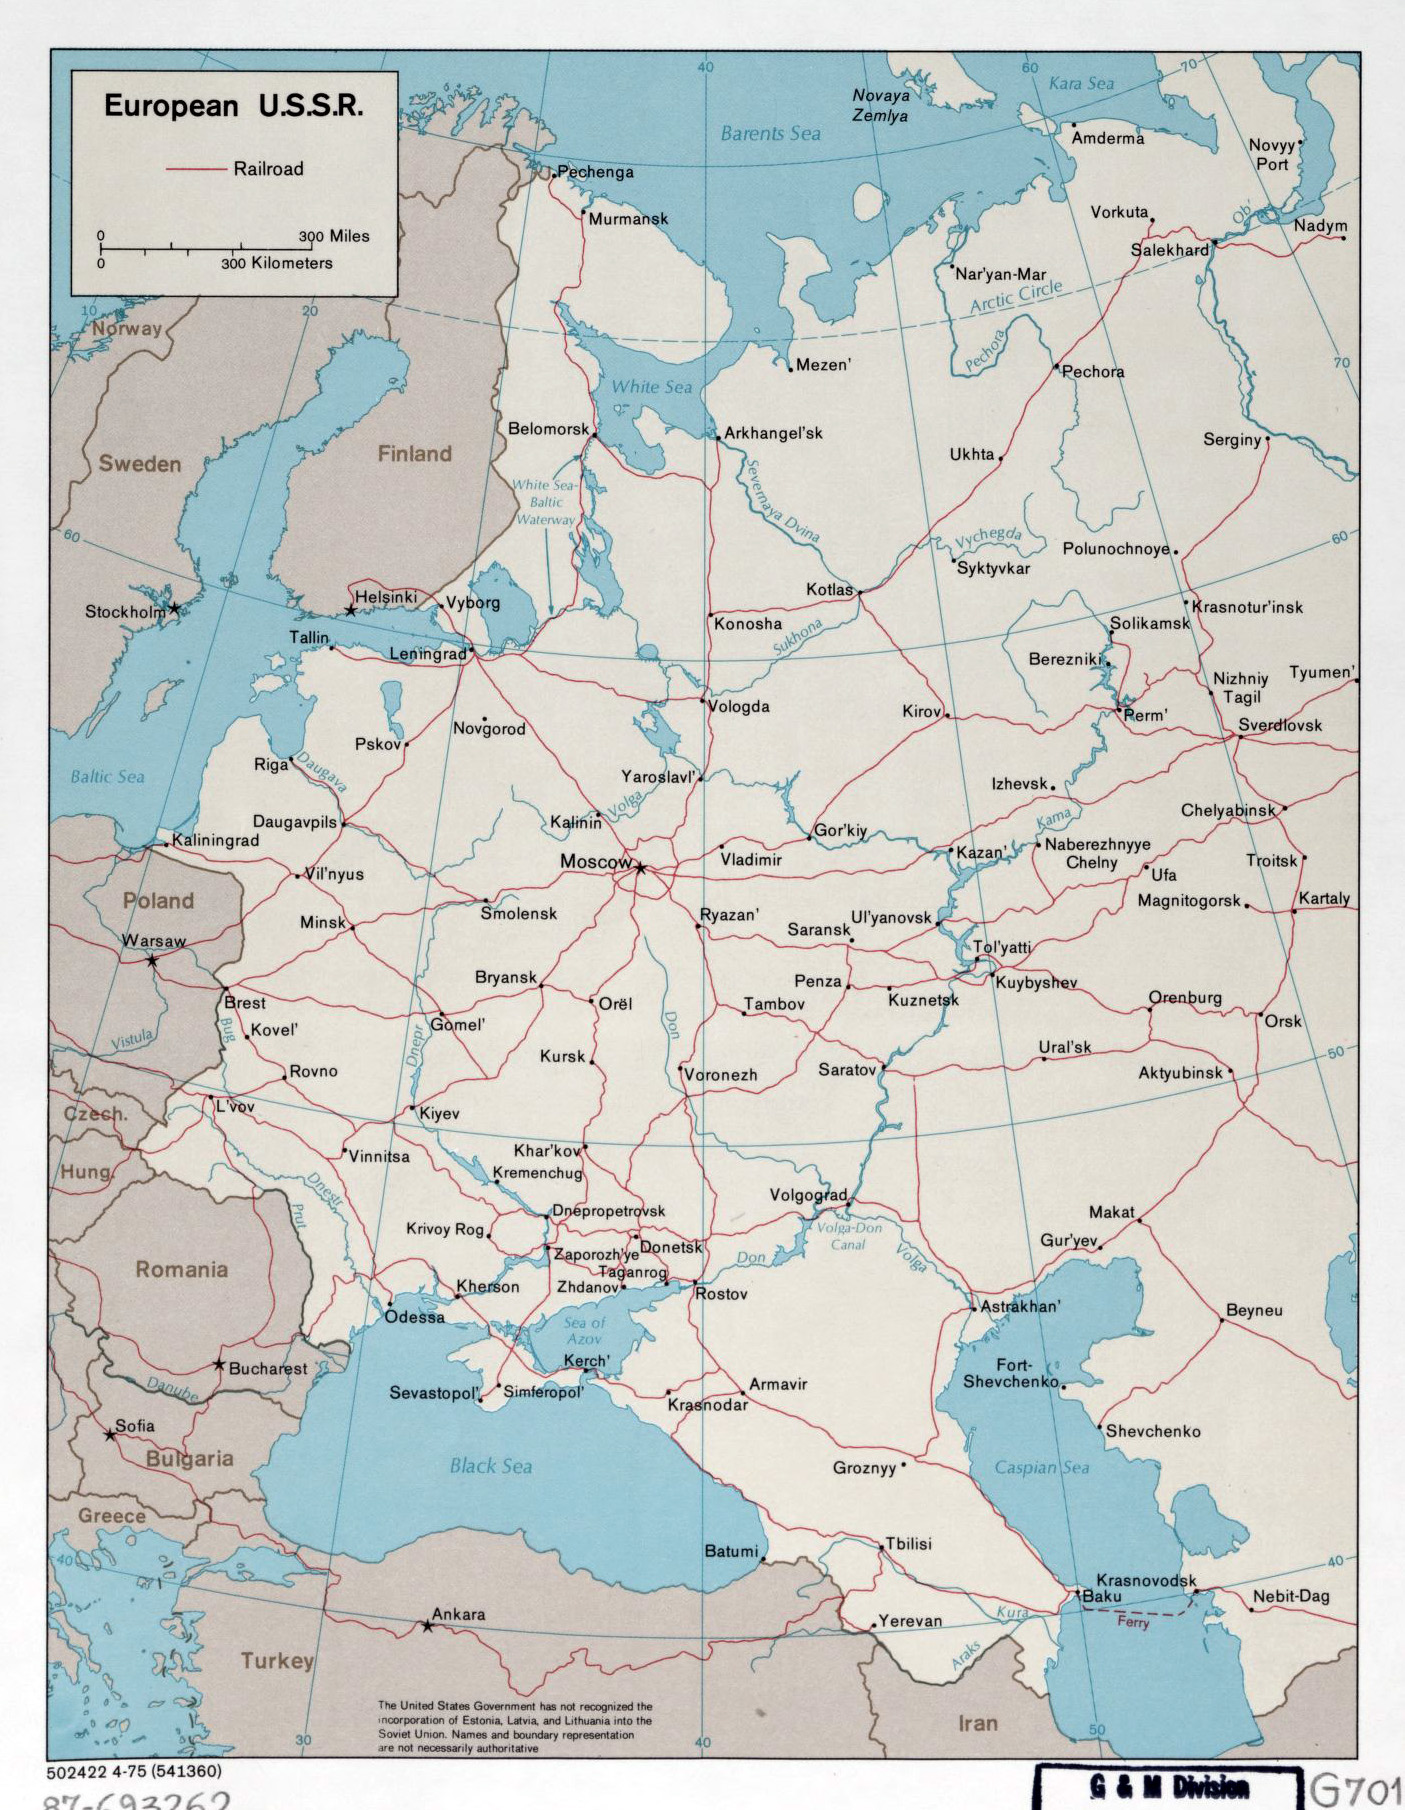 large detailed map of european ussr with railroads 1975